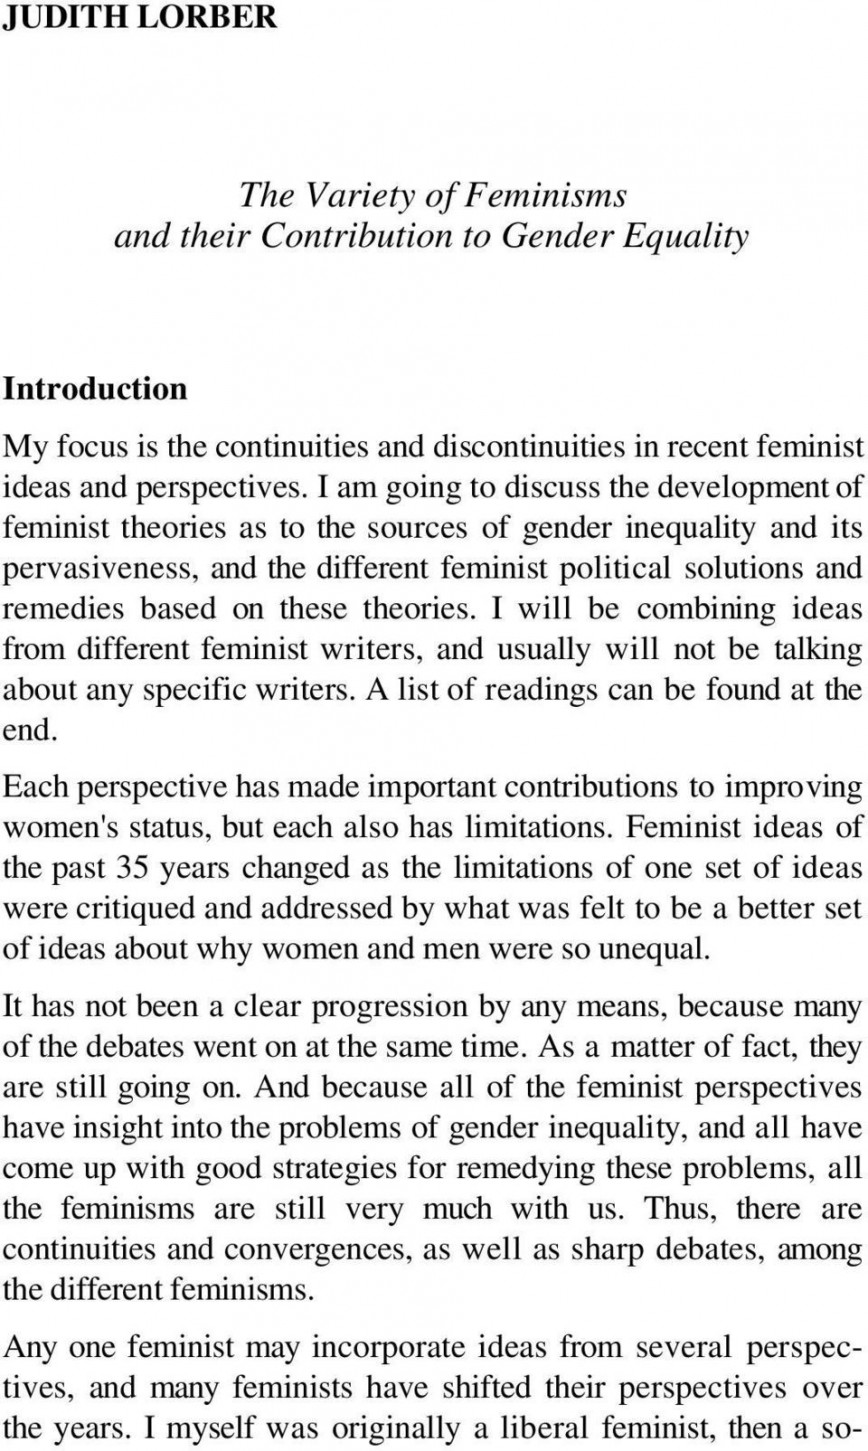 002 Essay Example Page 1 Formidable Equality Questions Gender Titles 868